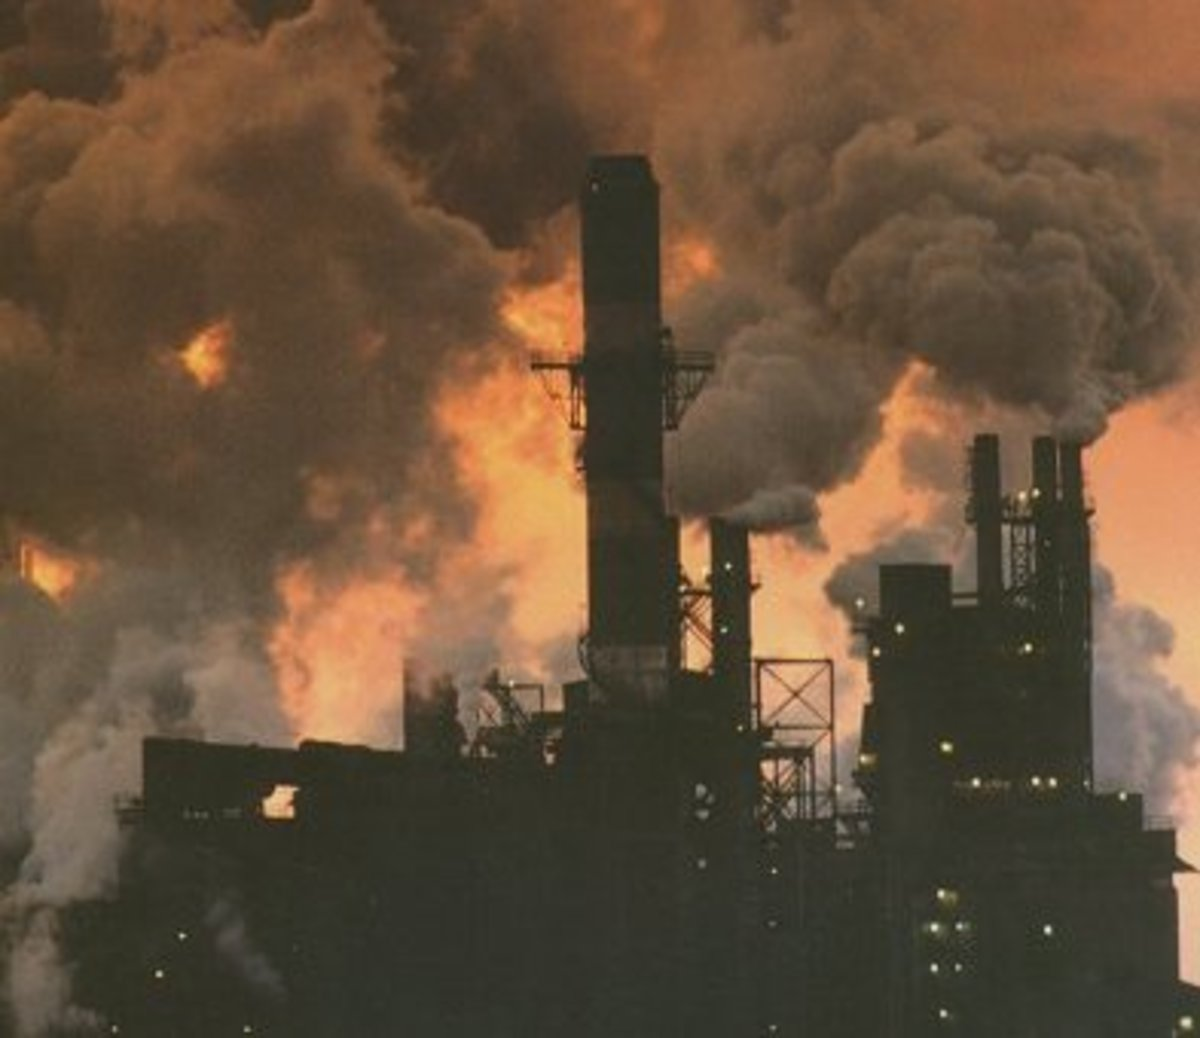 Environmental Laws Like NEPA and CEQA Are Meant To Stop Pollution Like This.